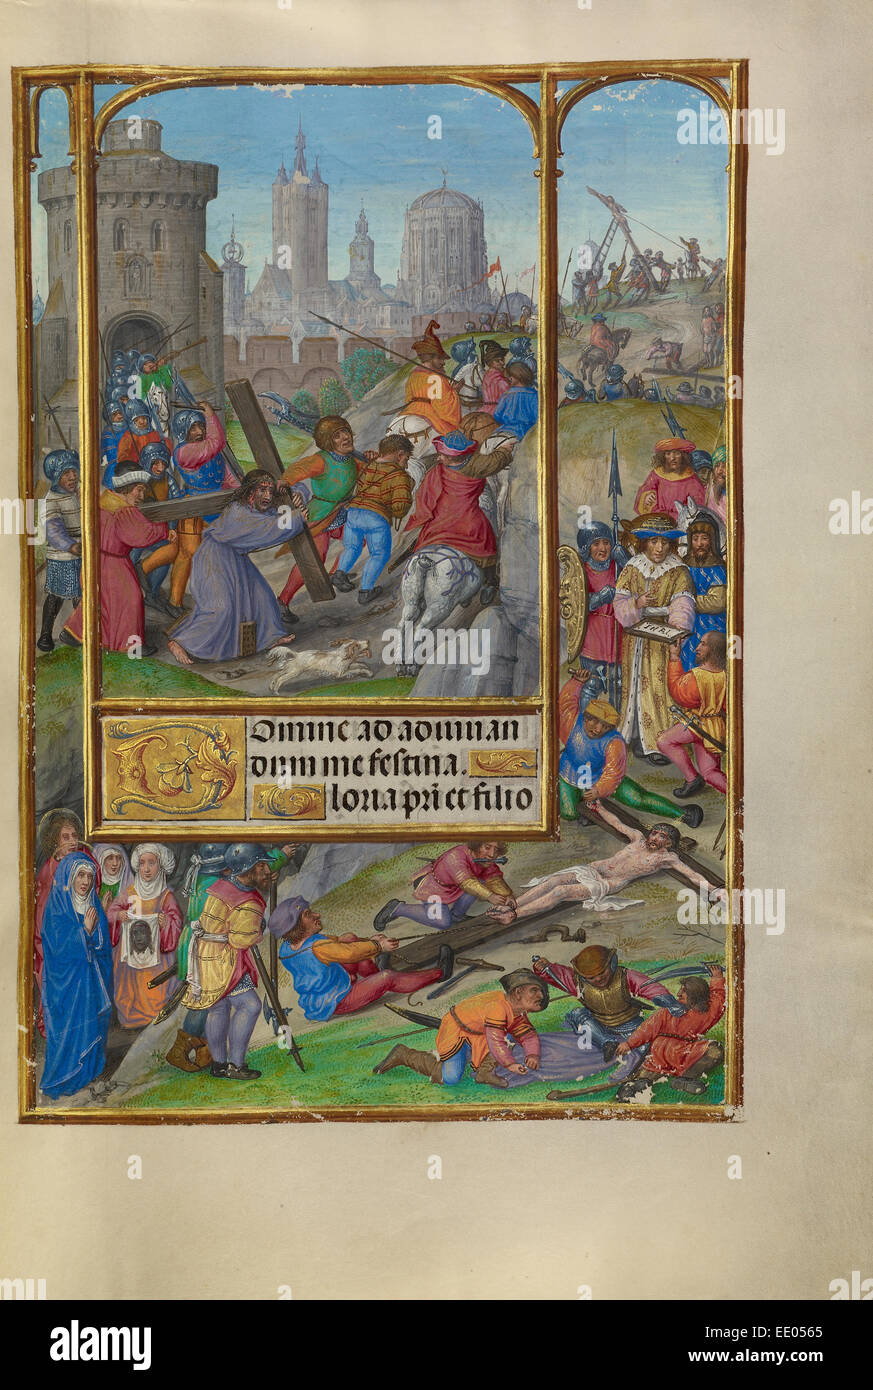 The Way to Calvary; Master of James IV of Scotland, Flemish, before 1465 - about 1541; Bruges, Belgium, Europe - Stock Image